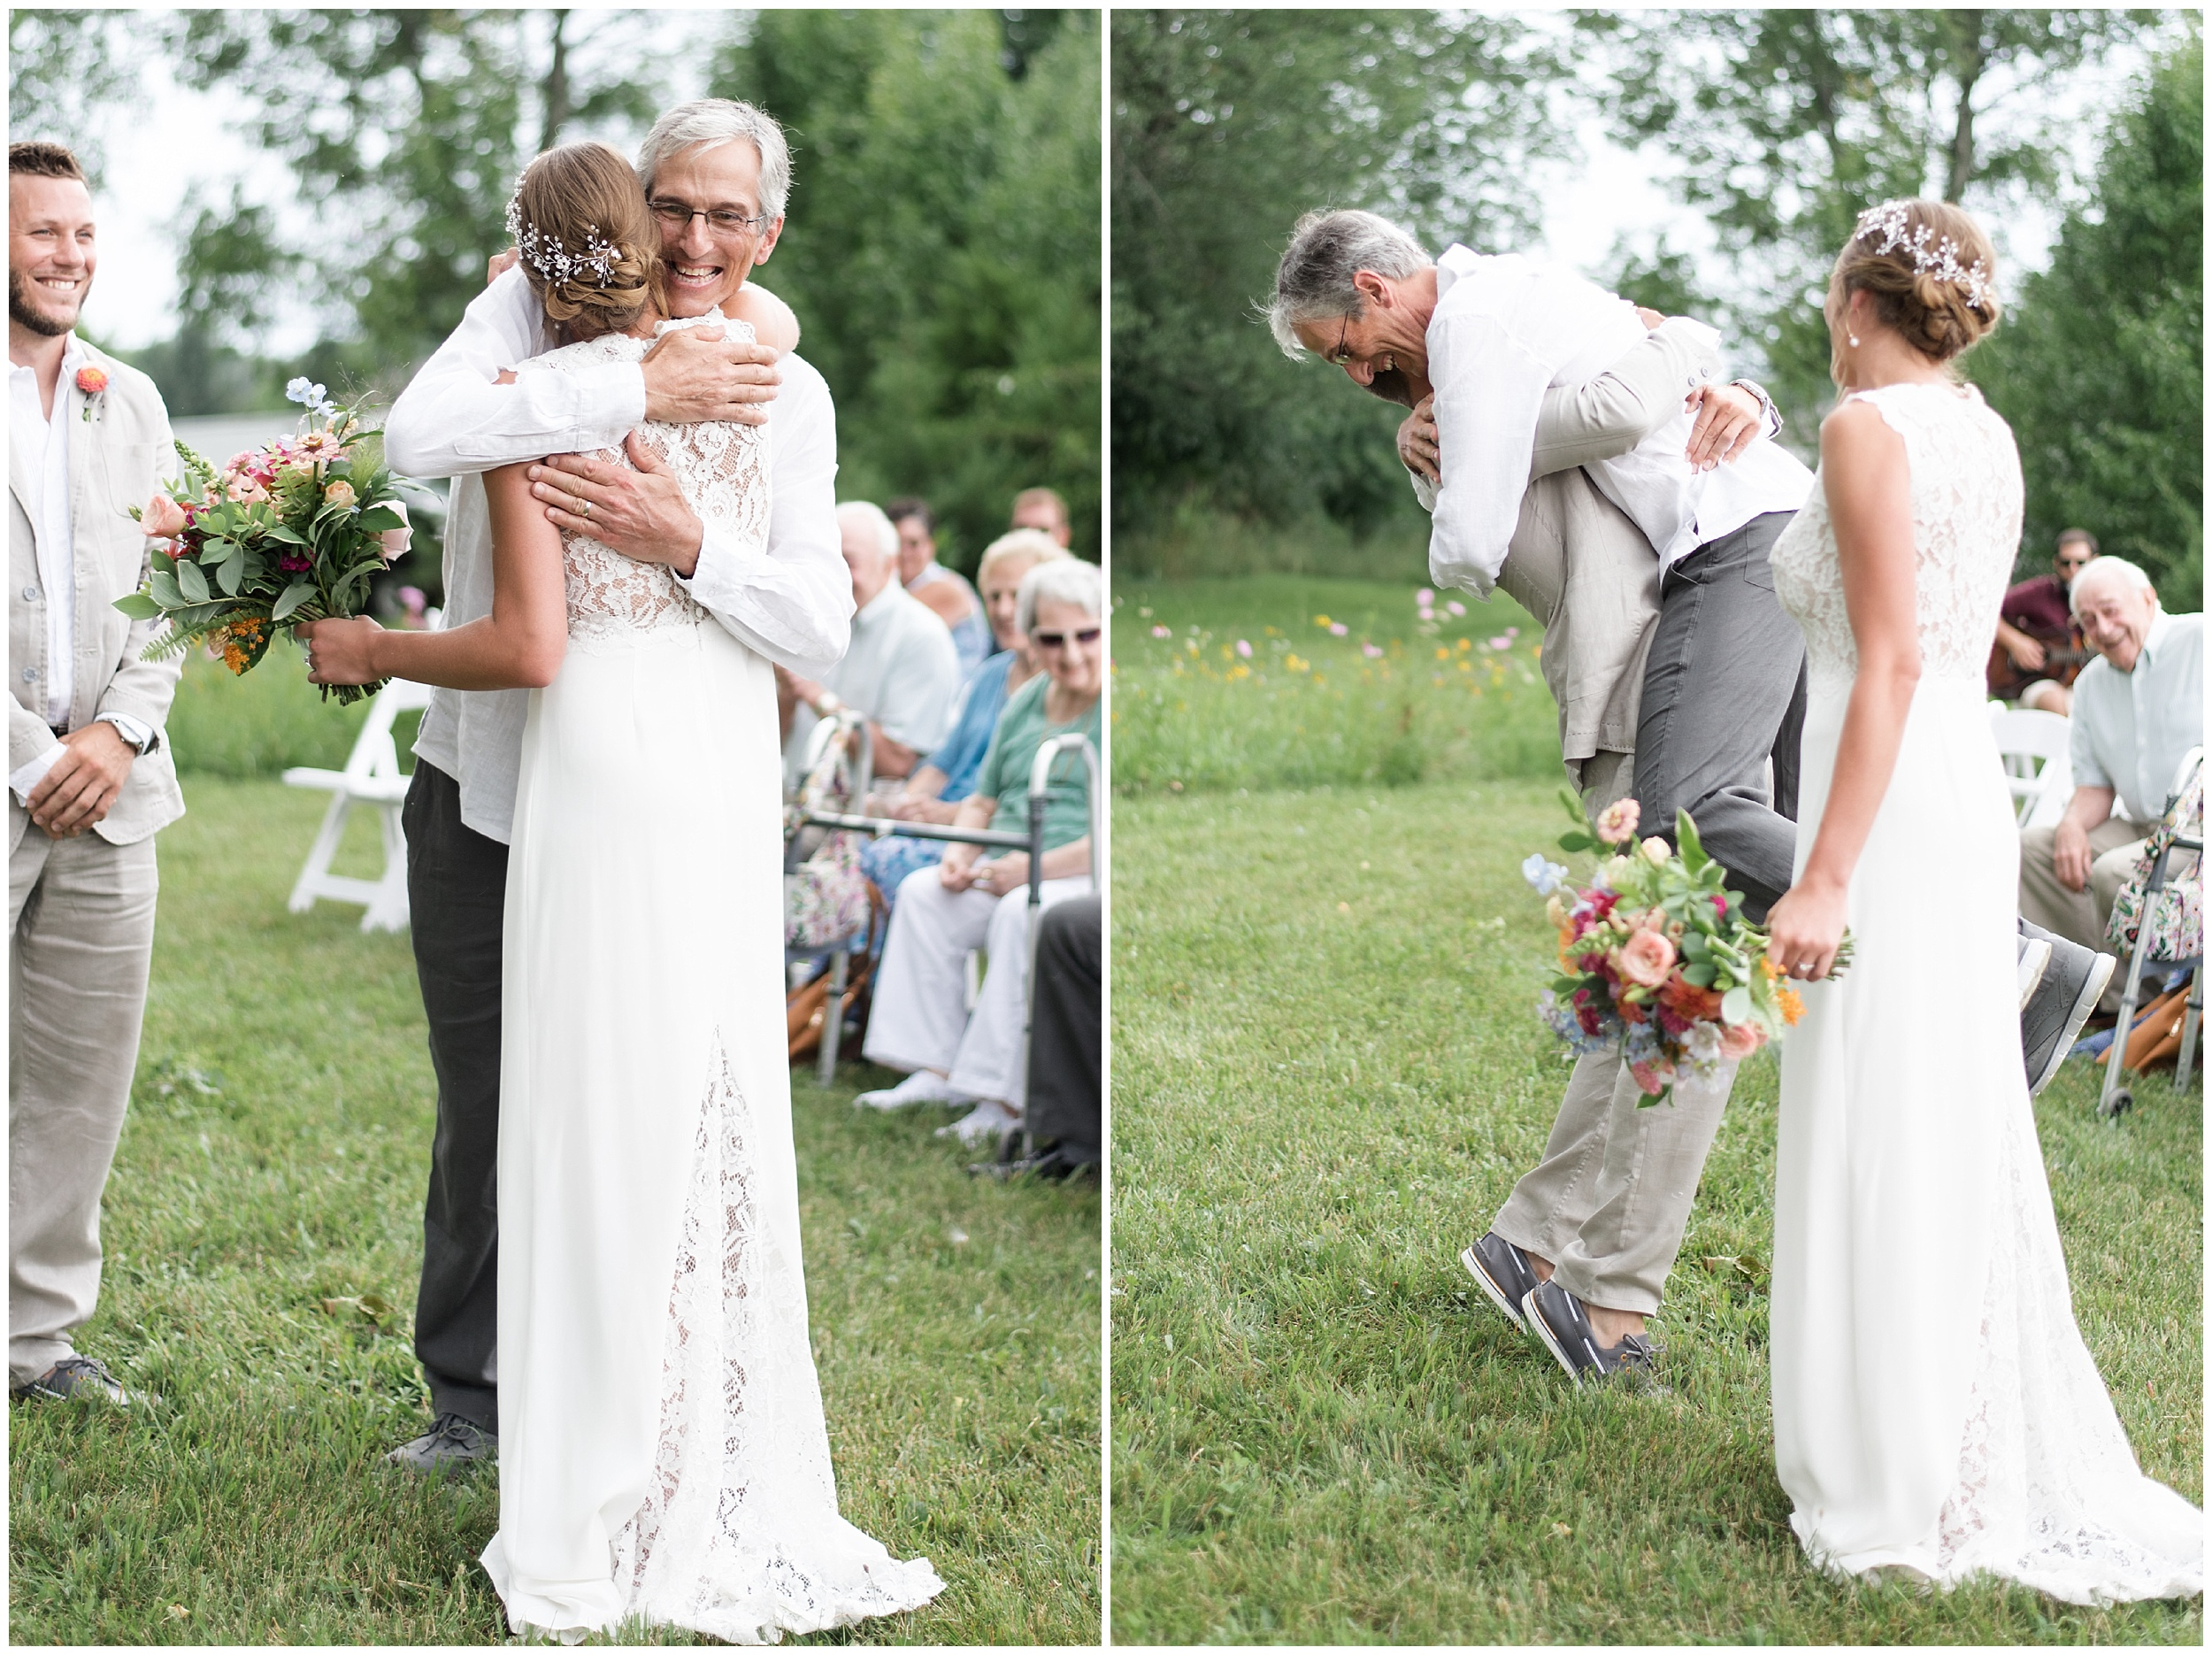 Whimsical-Ethereal-July-Kalamazoo-Wedding-Bright-Airy-Documentary-Milwaukee-Photographer_0032.jpg